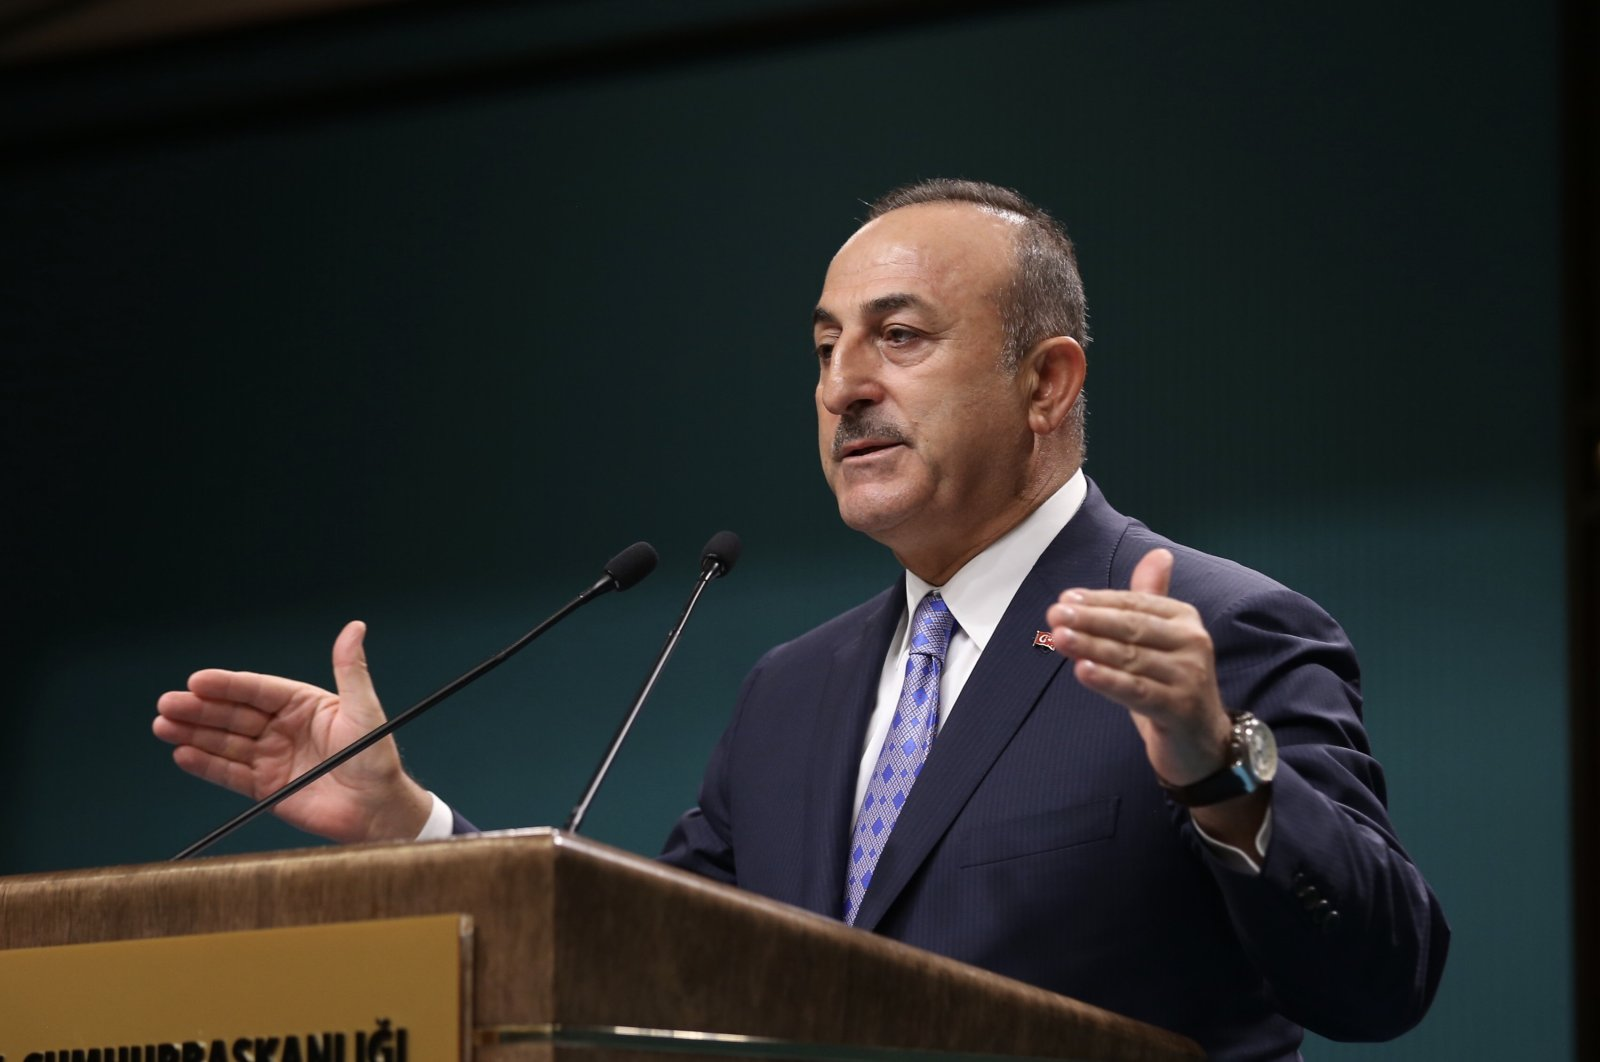 Foreign Minister Mevlüt Çavuşoğlu during a speech at the Presidential Complex in Ankara, Oct. 21, 2019 (AA Photo)